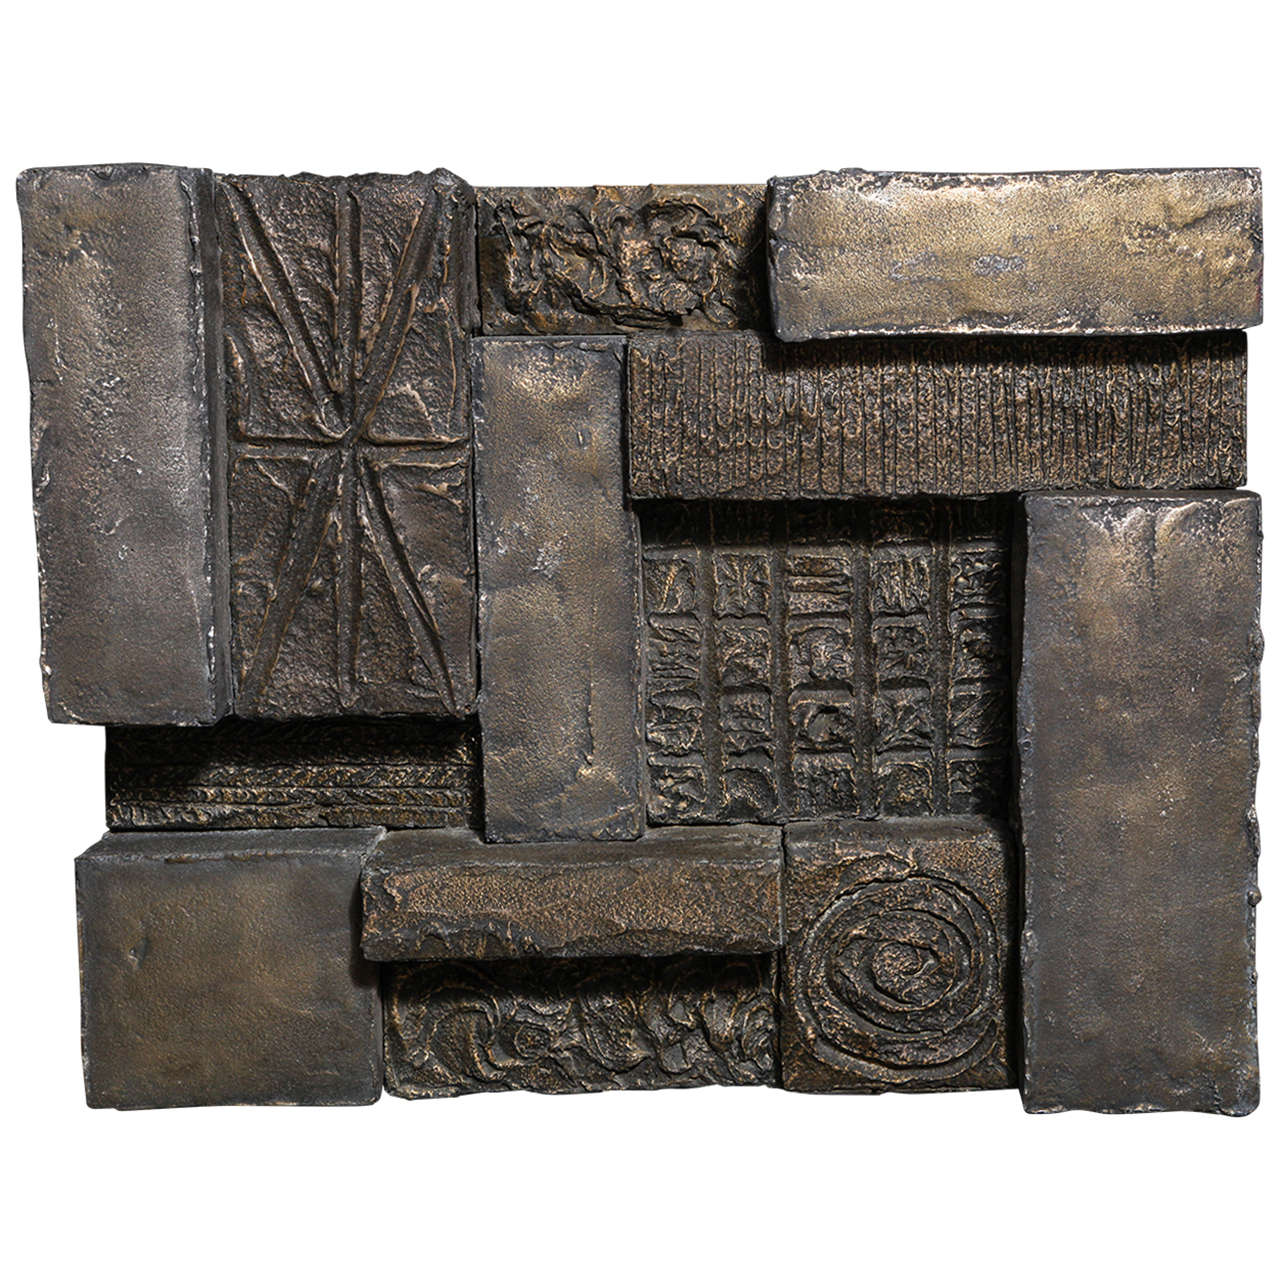 Circa 1970 Paul Evans Sculpted Bronze Resin Brutalist Wall Sculpture